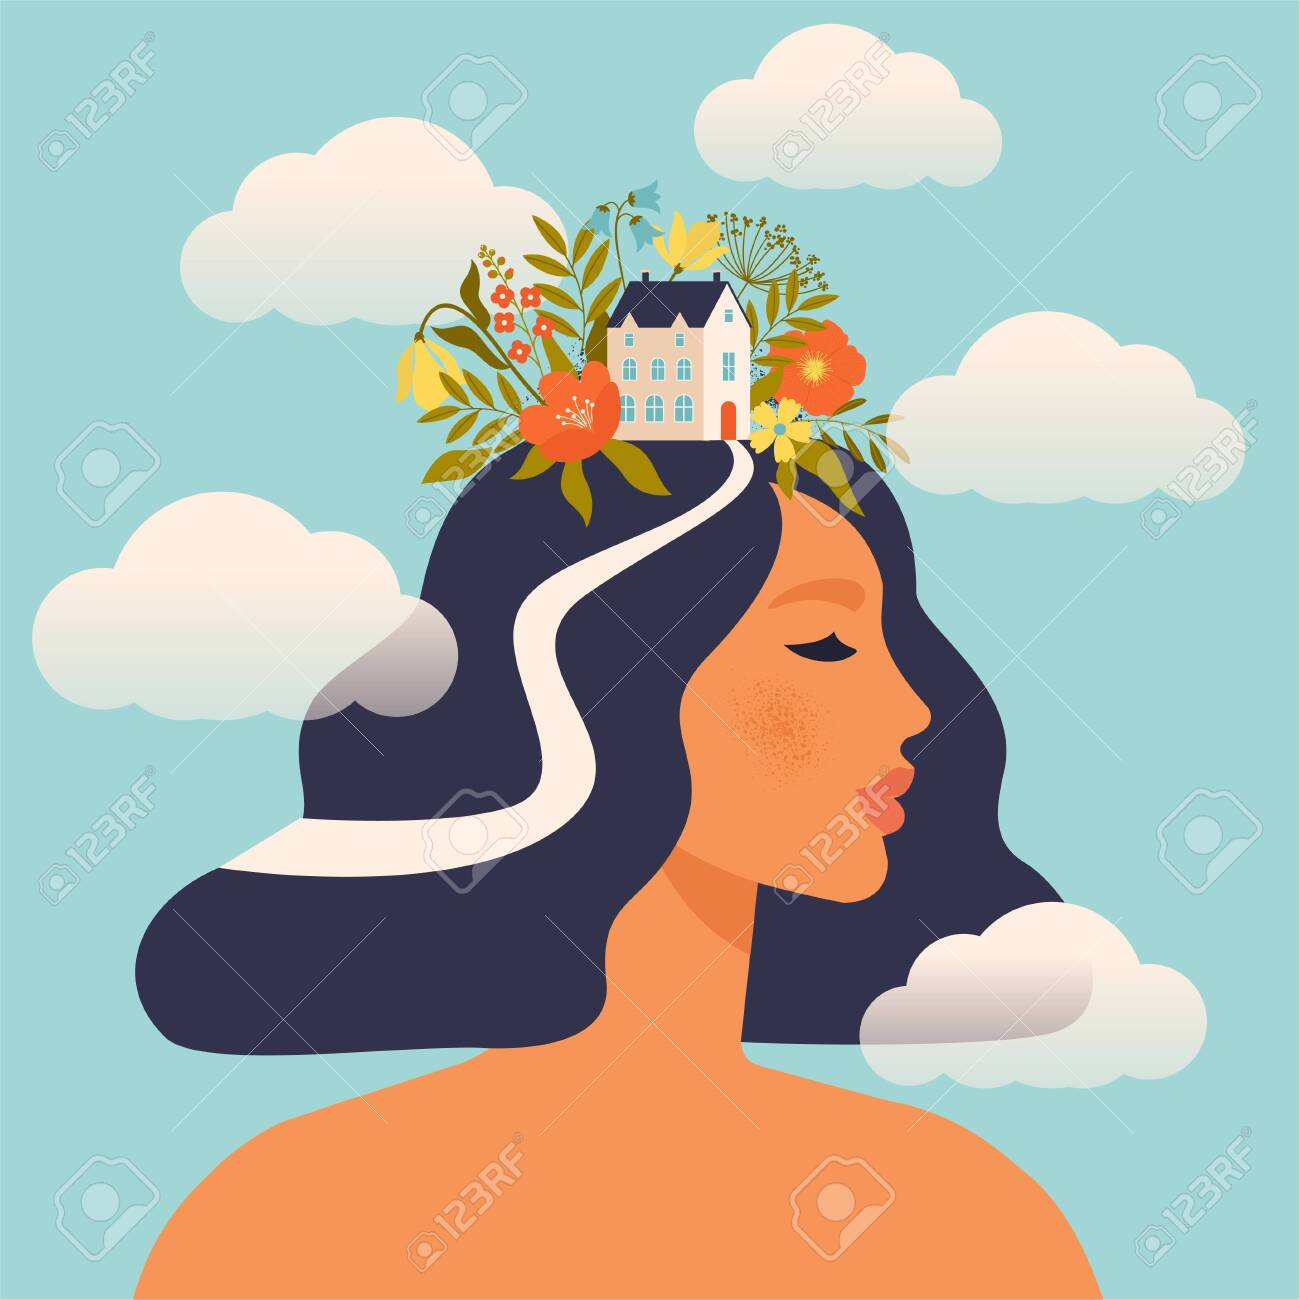 Concept about the processes of thinking of women. Creating ideas in the head, creative profession. Creative fantasy thinking vector illustration. Mechanism of the brain, thinking worker. Woman world. - 146221721